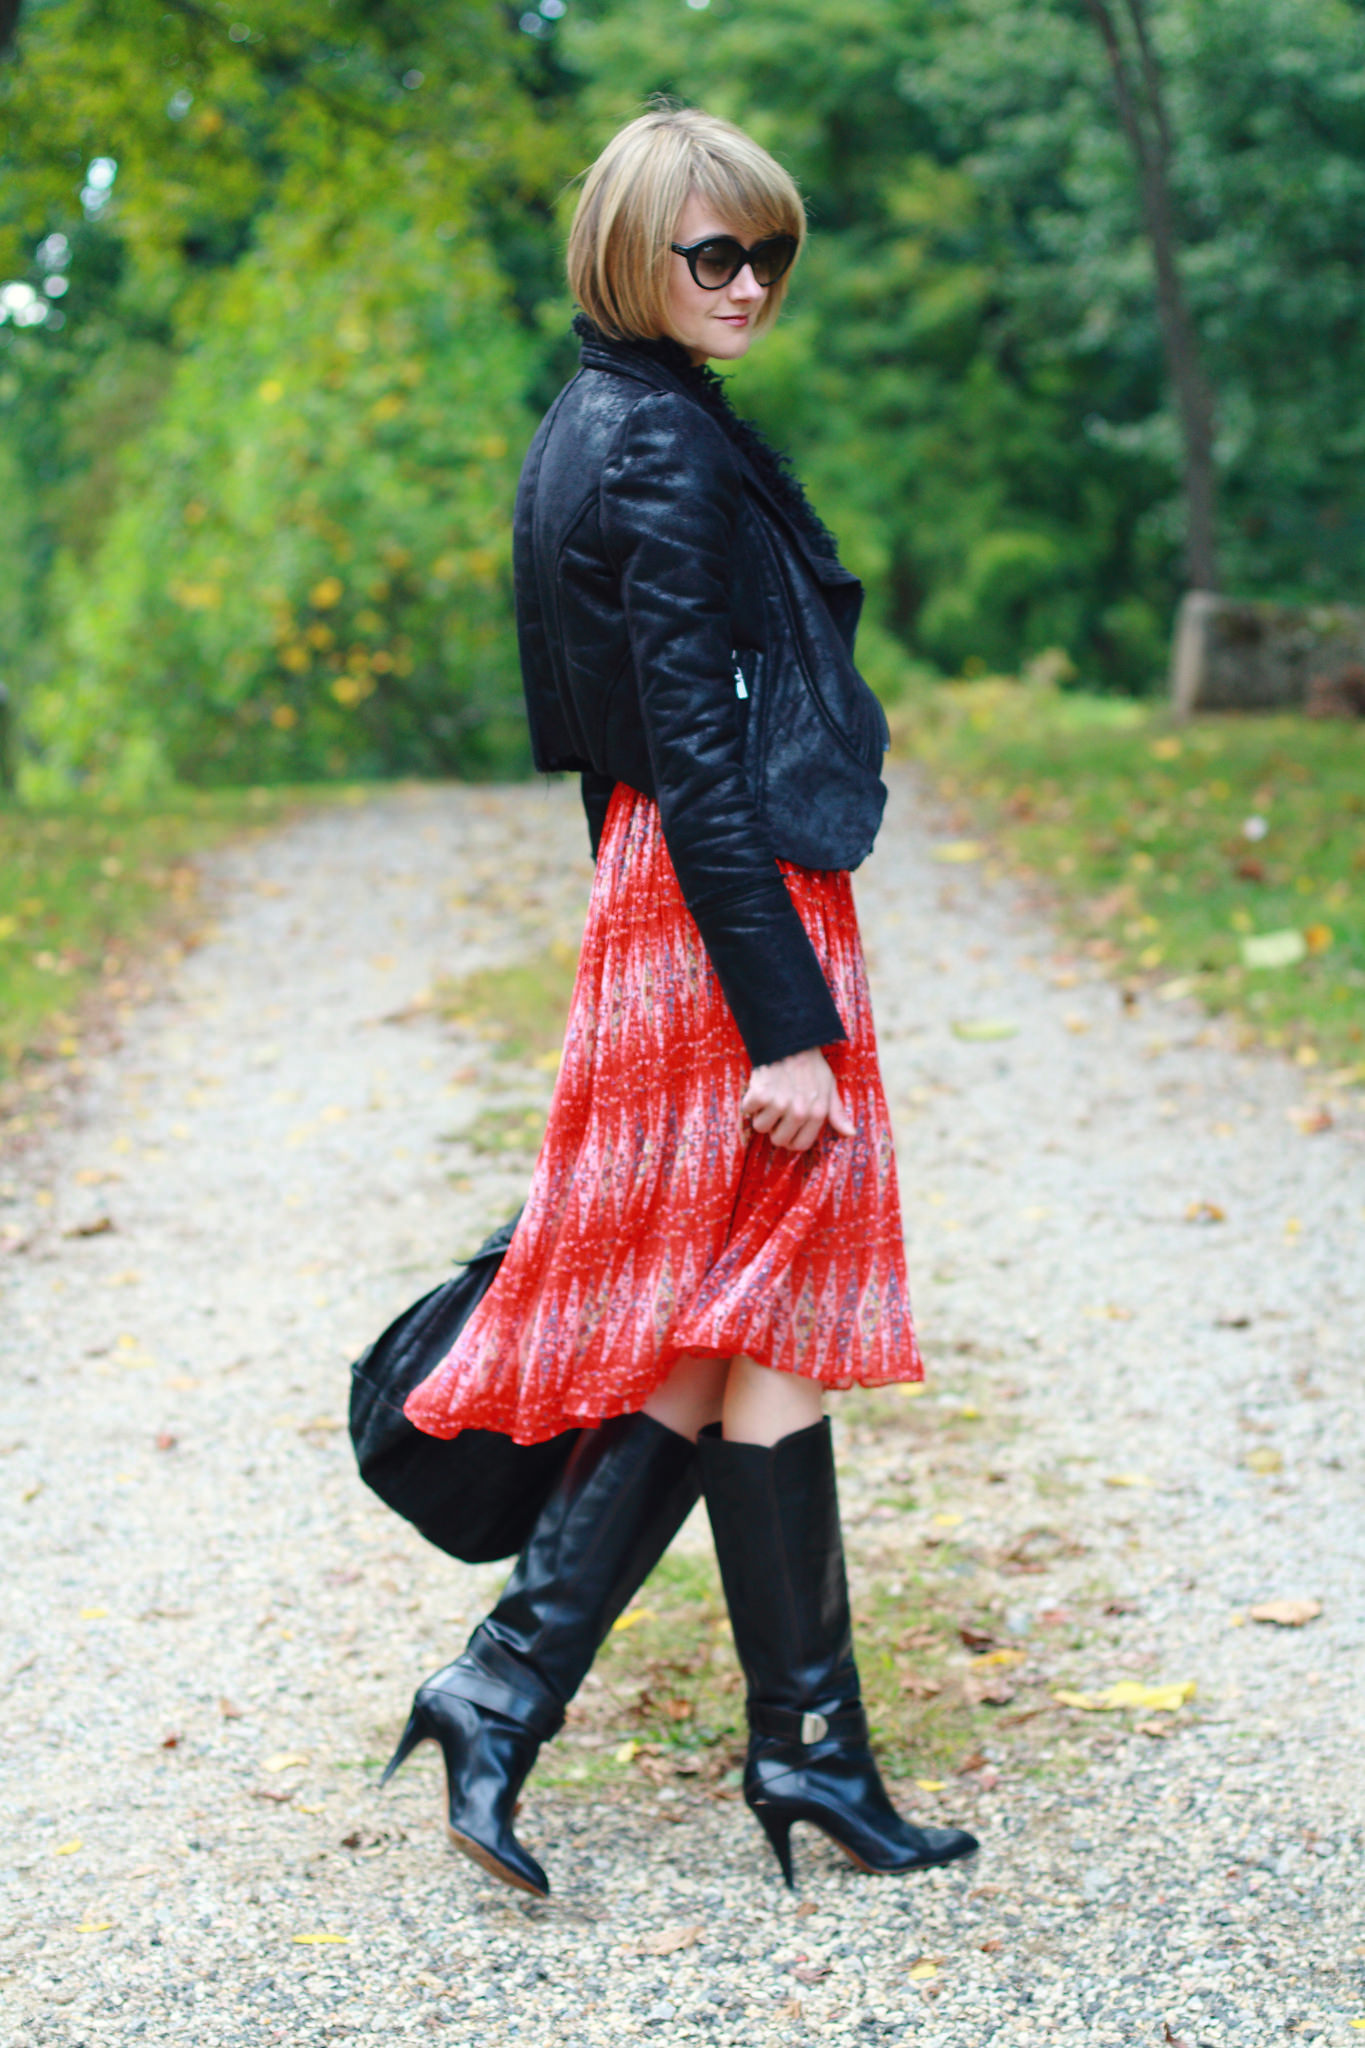 Romwe leather jacket and red dress